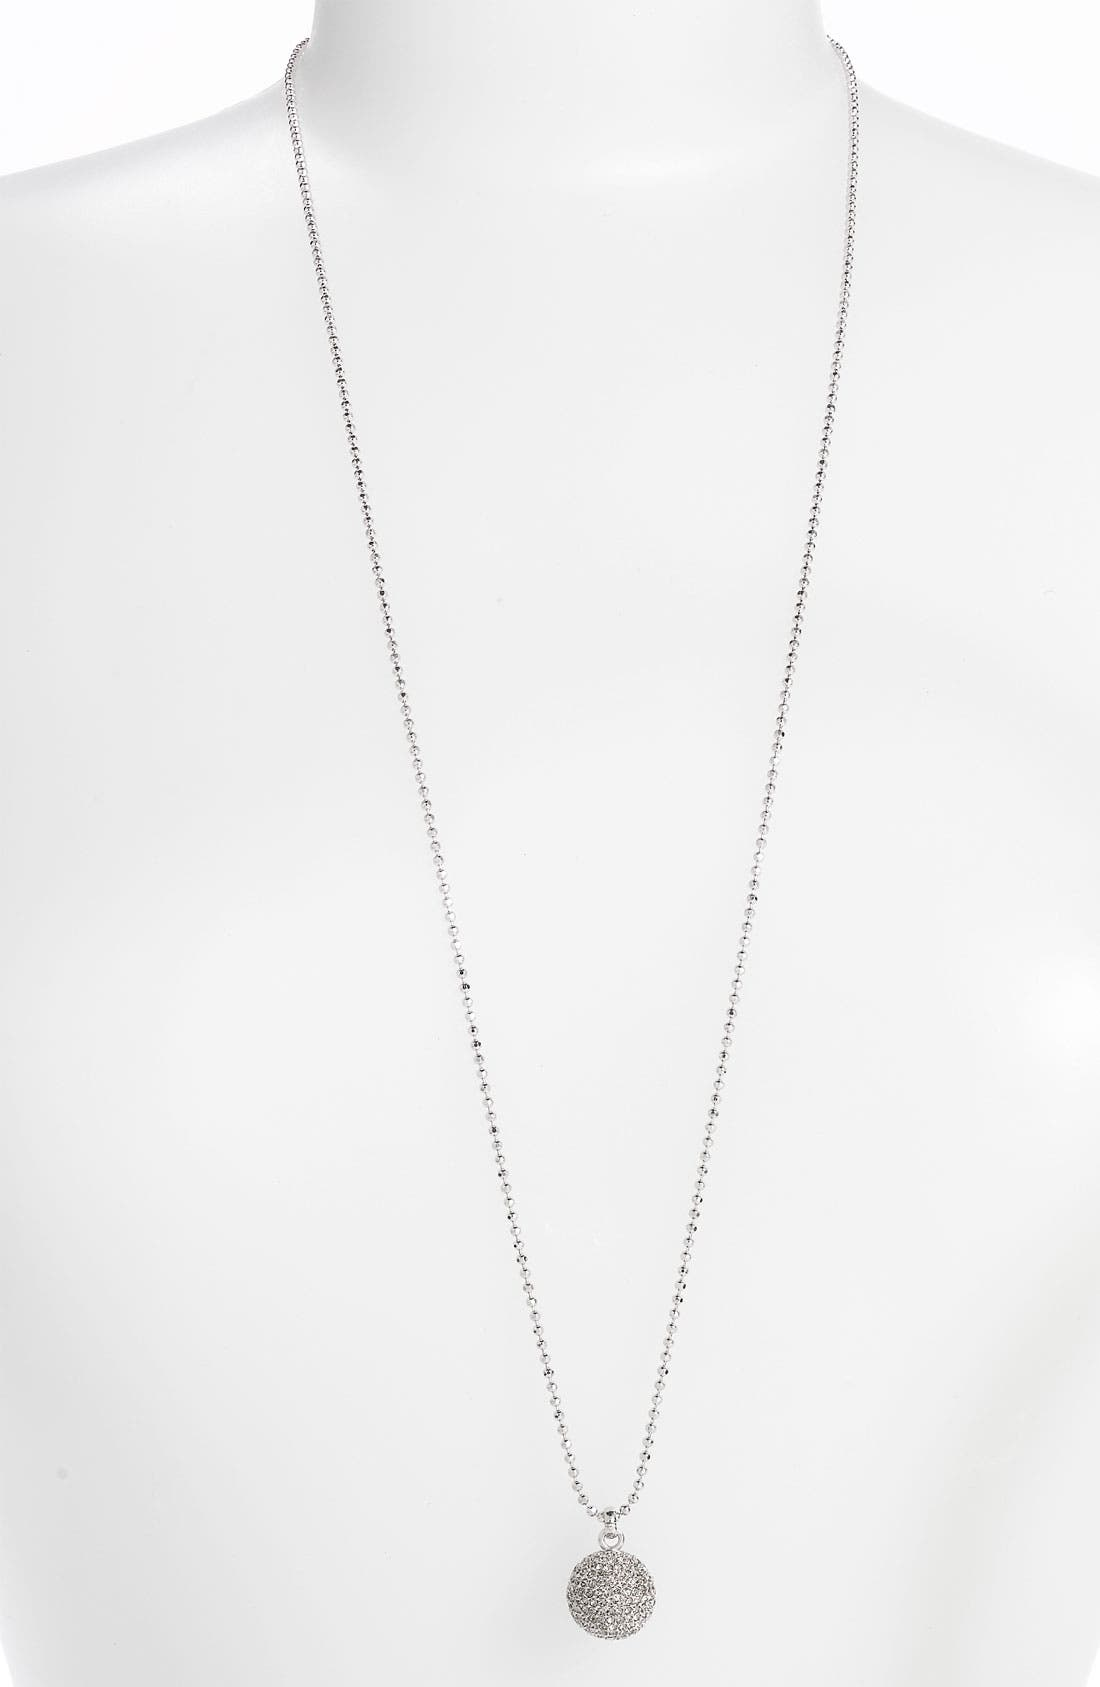 Main Image - Michael Kors Pavé Ball Long Necklace